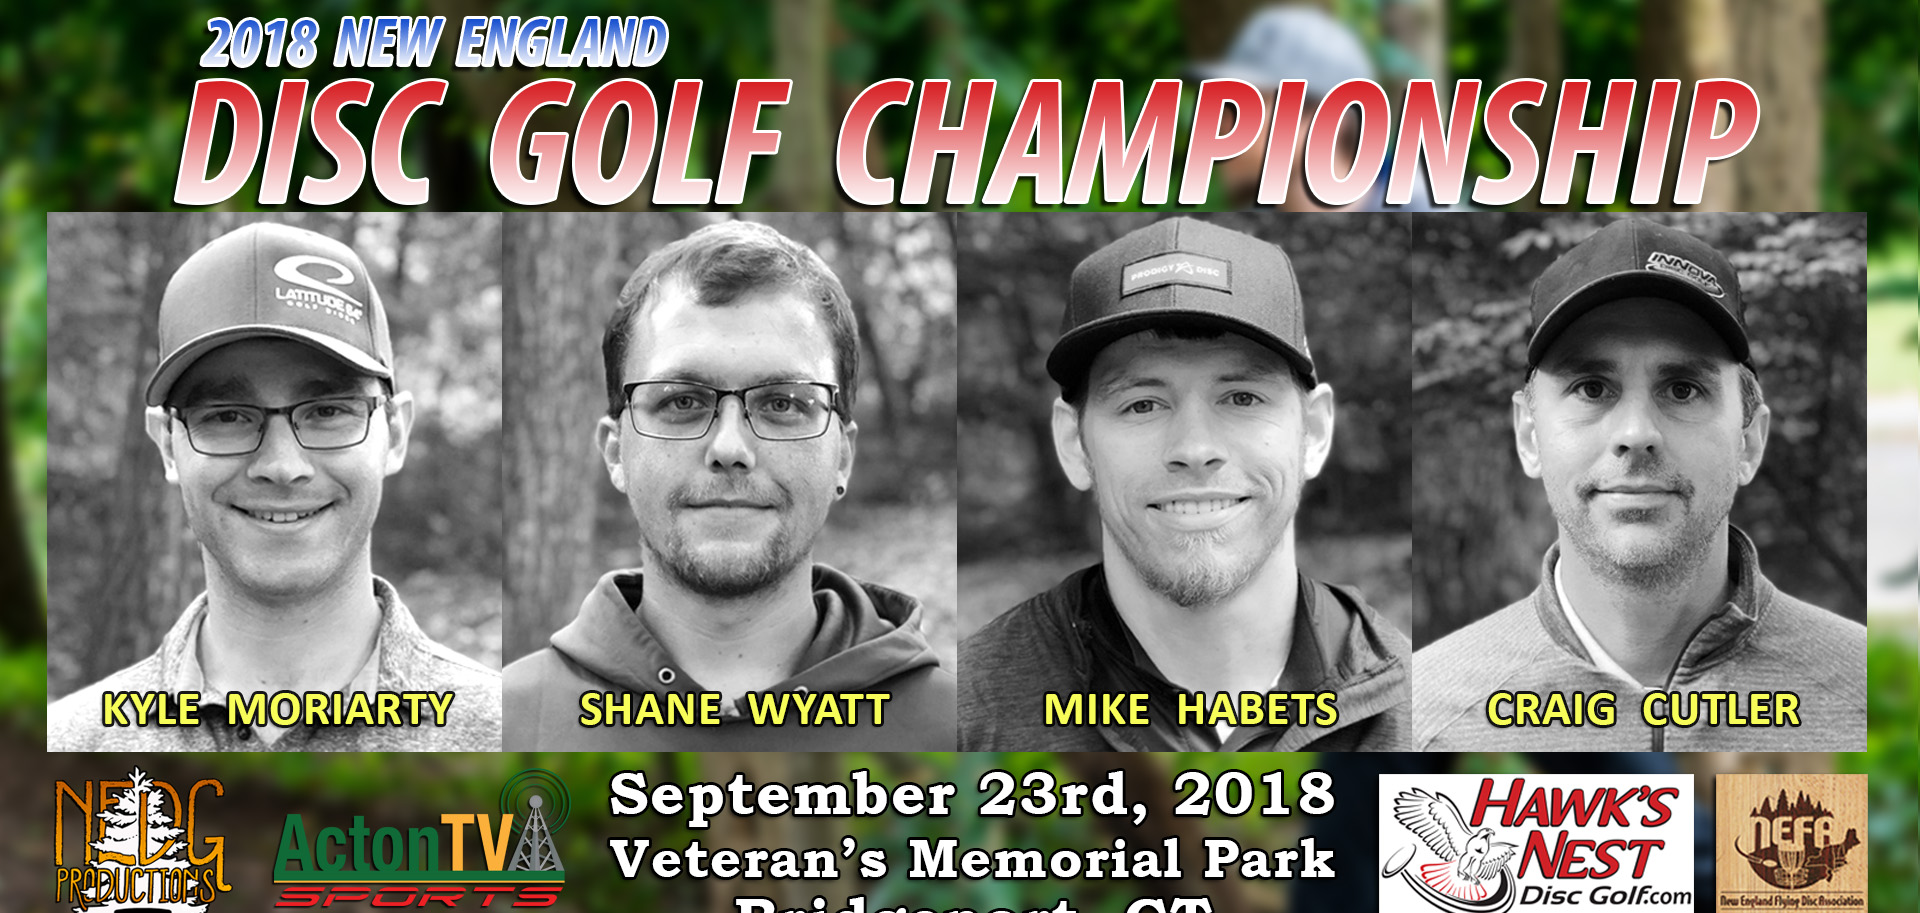 The 2018 New England Disc Golf Championship